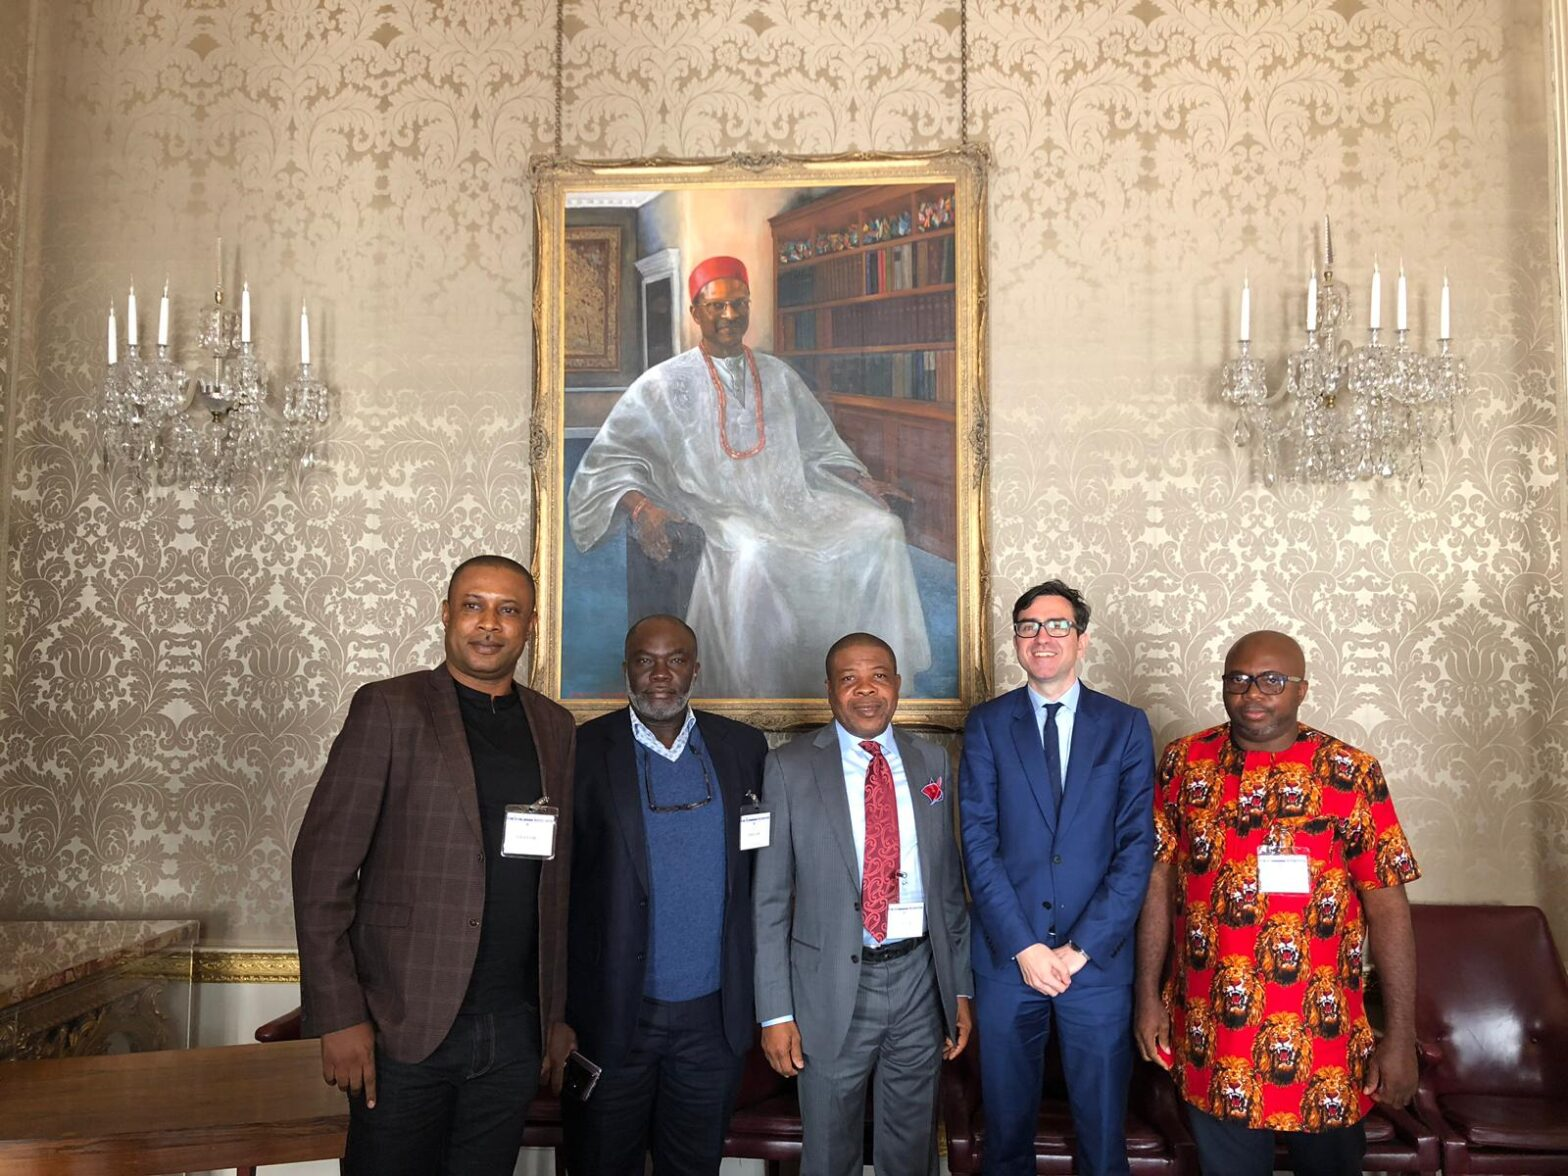 Welcoming in-coming Imo State Governor to Marlborough House, April 2019